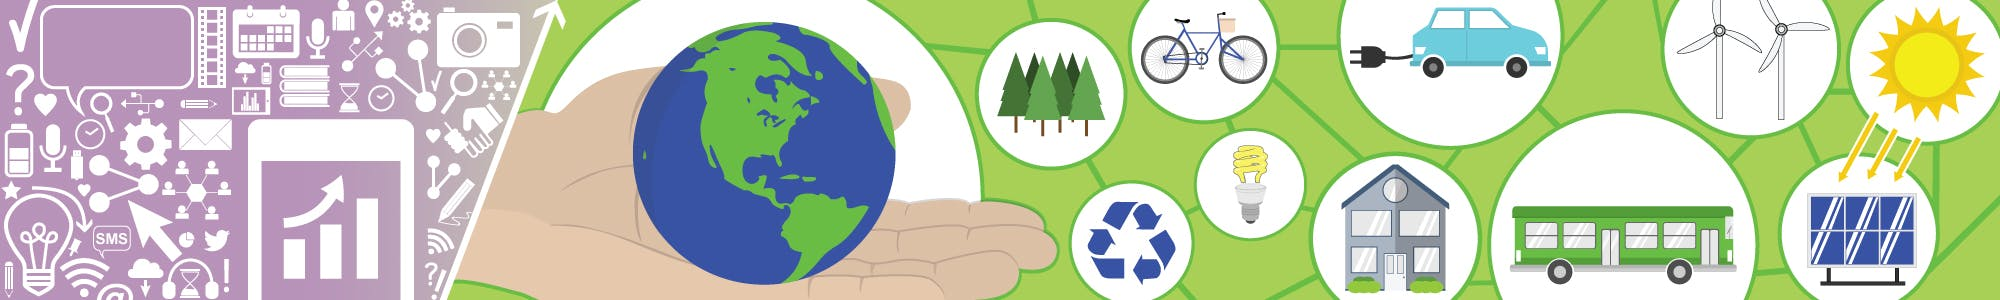 Engagement icons beside images representing potential greenhouse gas reduction tactics.